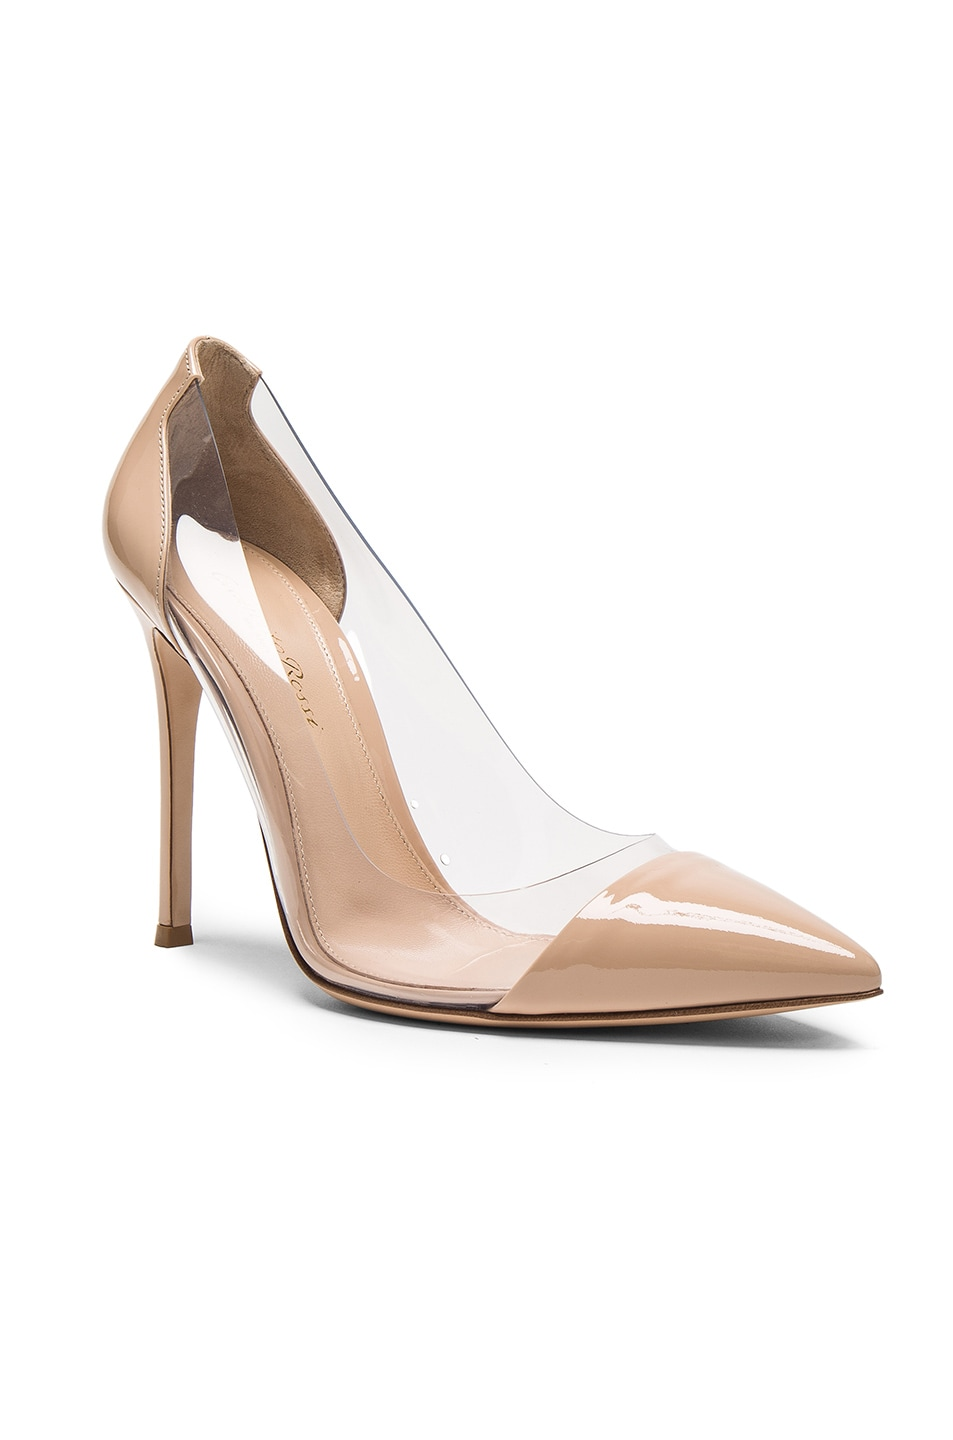 Image 2 of Gianvito Rossi Patent Leather Plexi Pumps in Nude